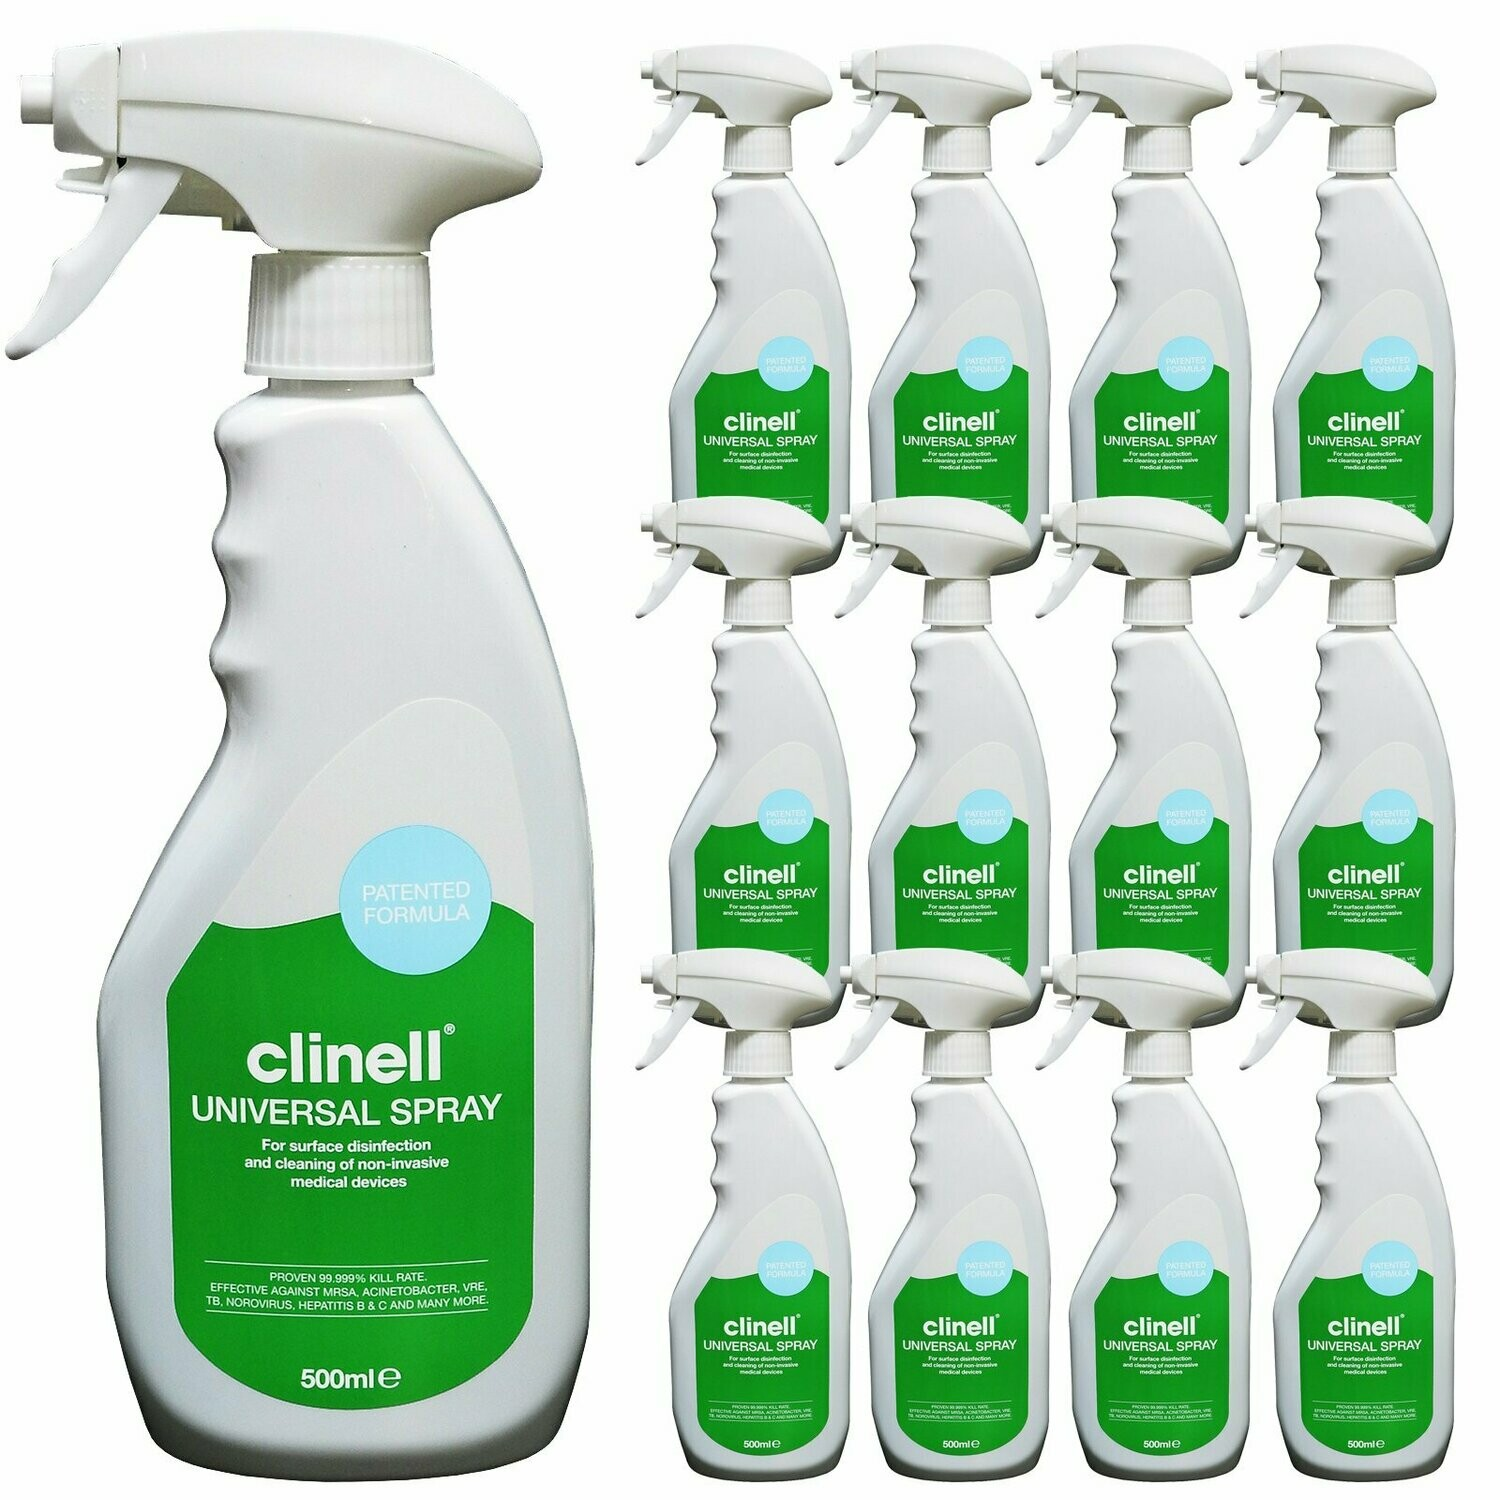 Clinell Universal Disinfectant Spray - nayble